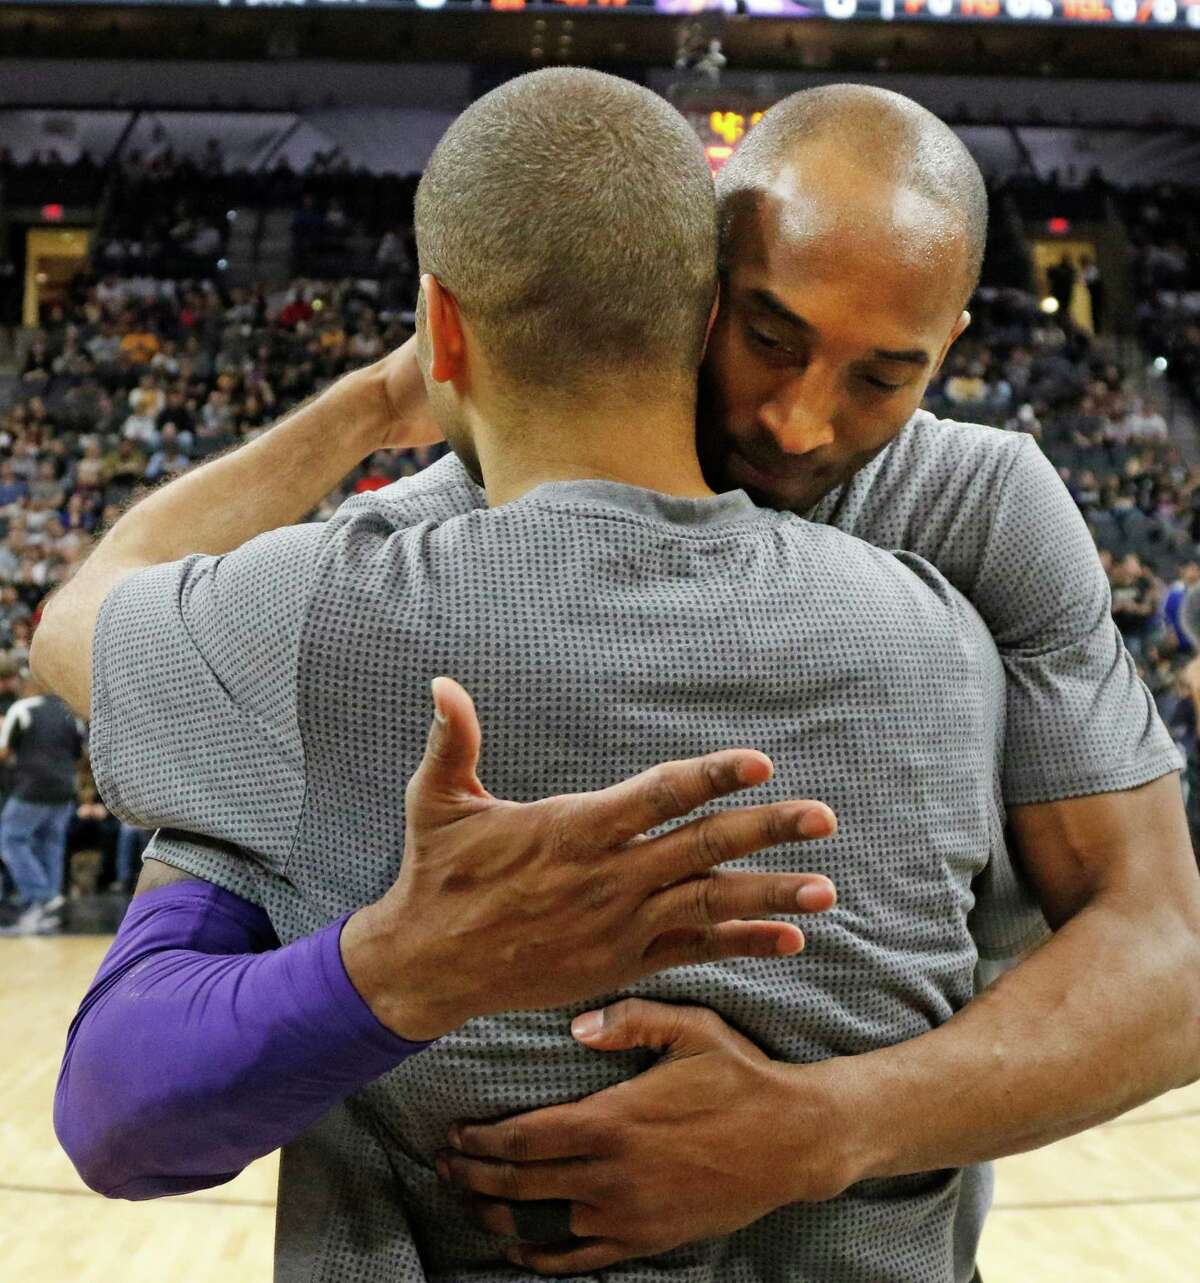 SAN ANTONIO,TX - FEBRUARY 6: Tony Parker #9 of the San Antonio Spurs gets a hug from Kobe Bryant #24 of the Los Angeles Lakers at AT&T Center on February 6, 2016 in San Antonio, Texas. NOTE TO USER: User expressly acknowledges and agrees that , by downloading and or using this photograph, User is consenting to the terms and conditions of the Getty Images License Agreement.